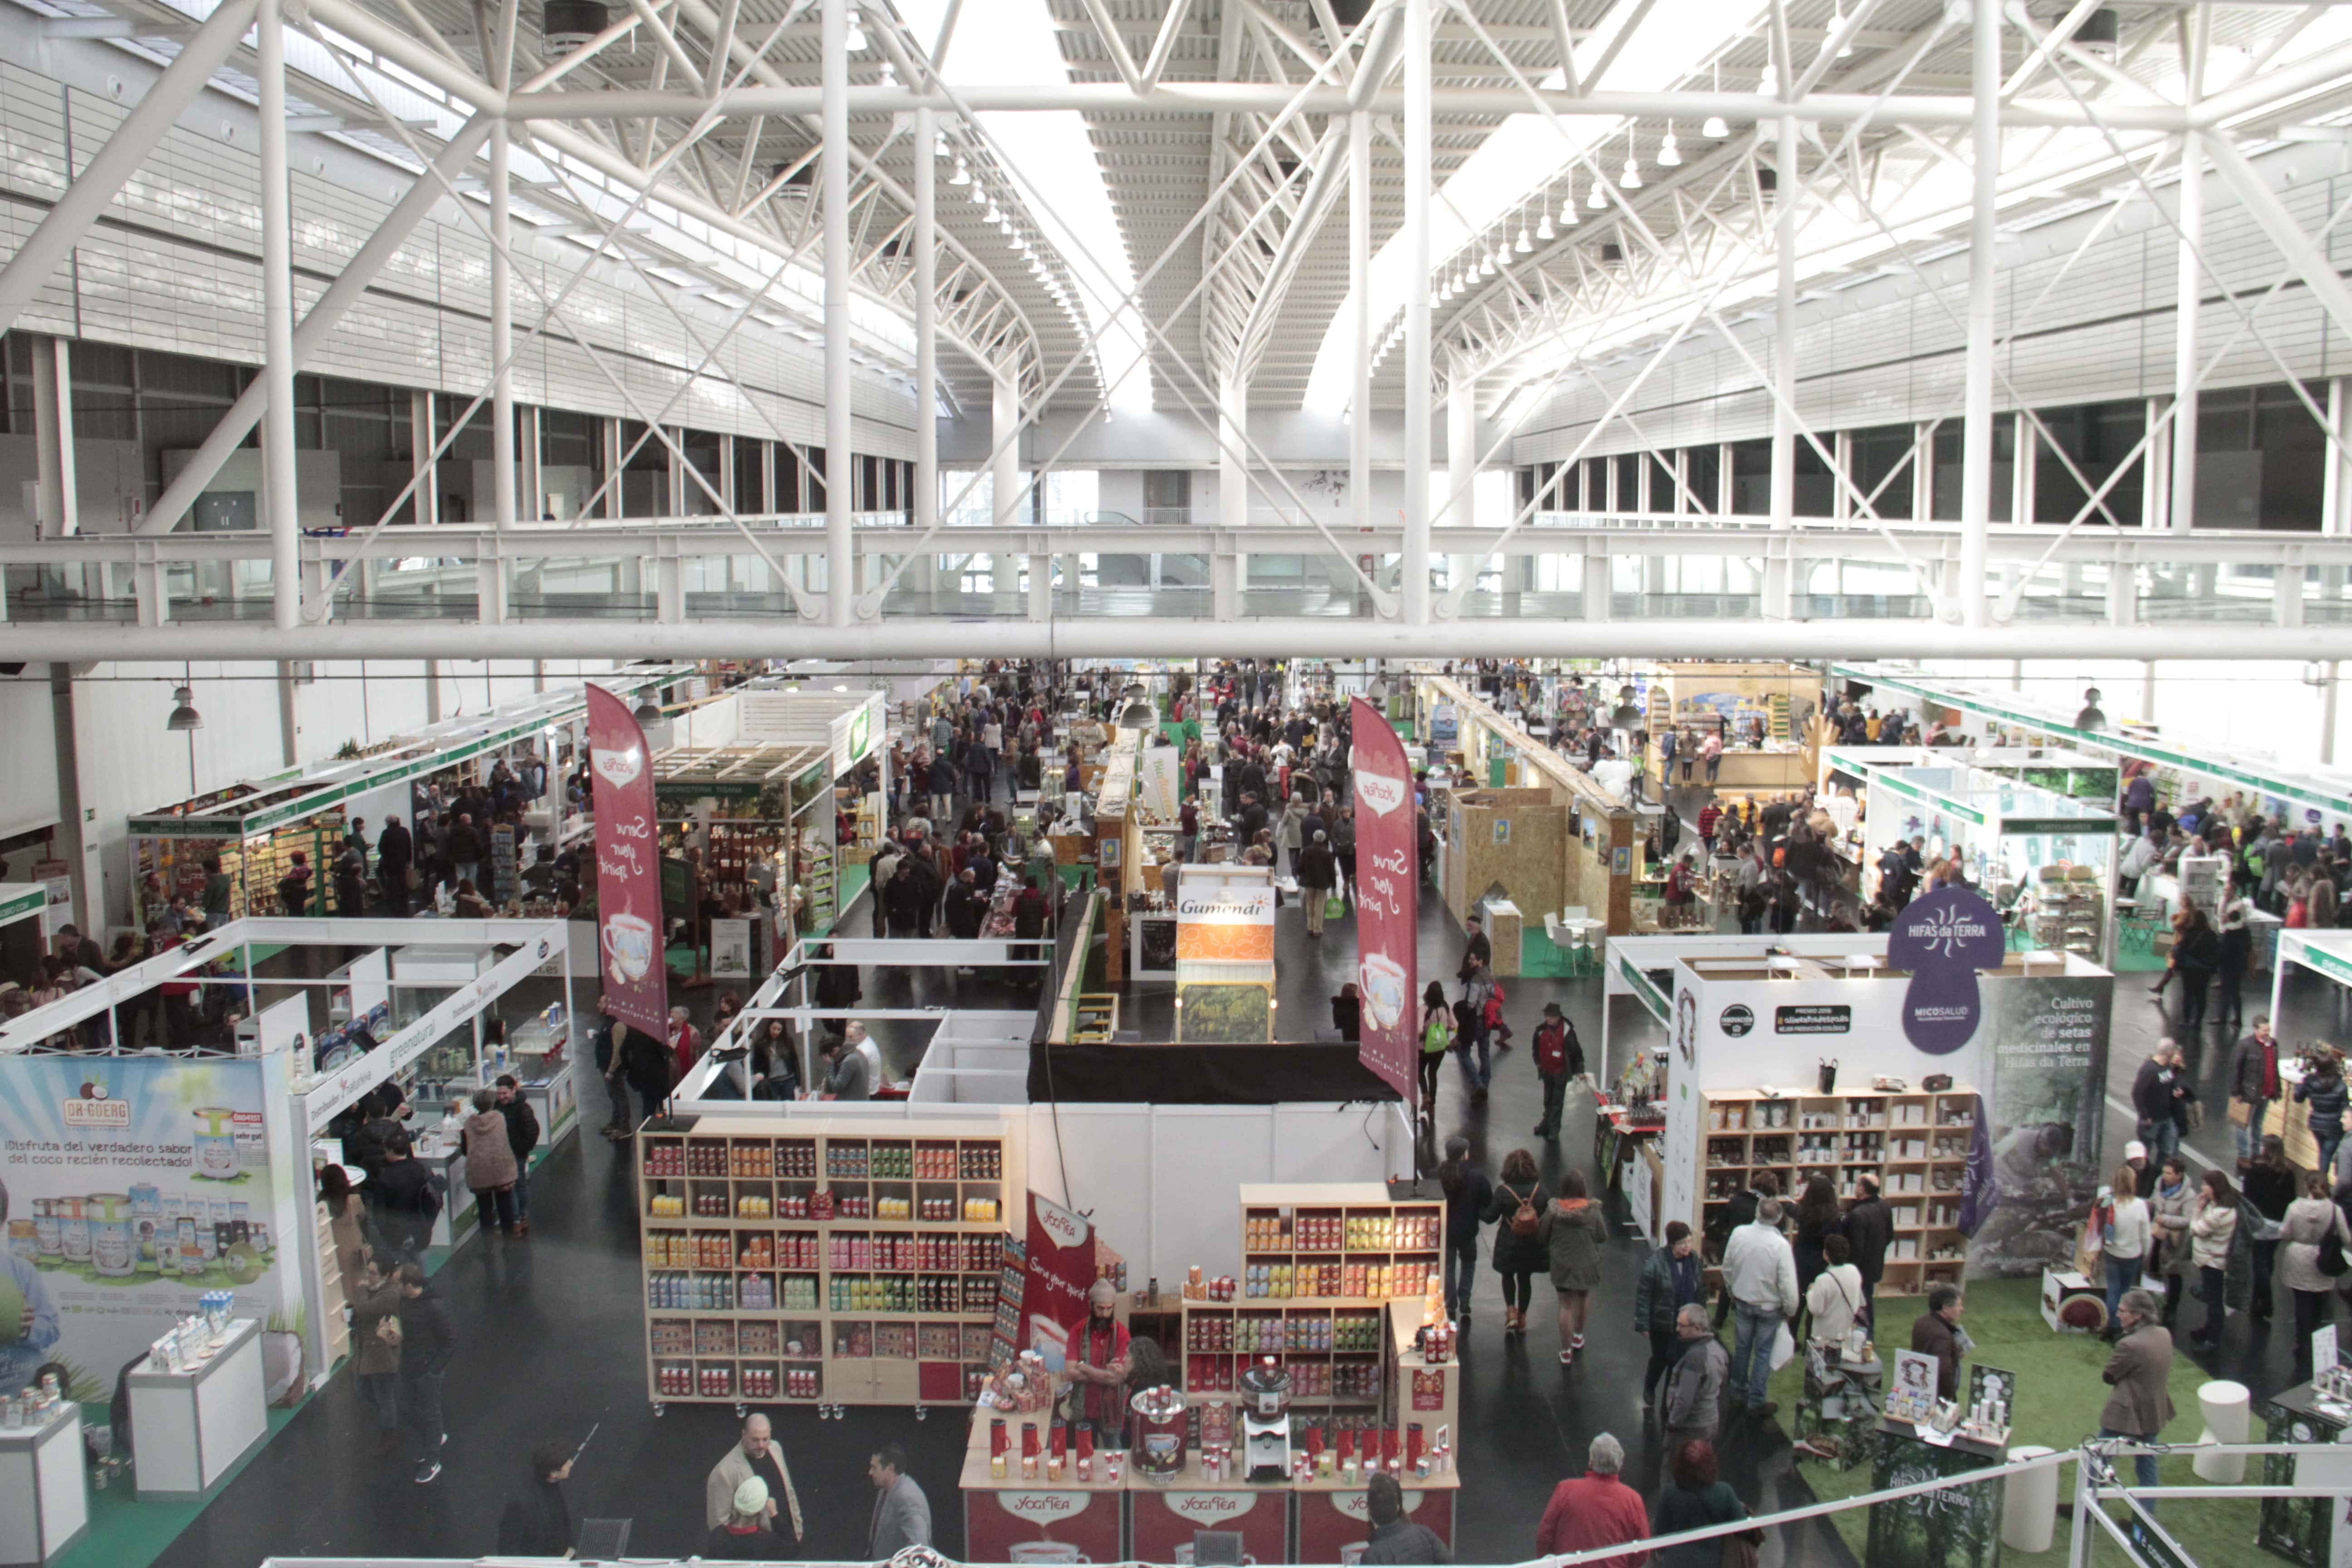 The second edition of the organic product fair Biocultura arrives at ExpoCoruña with 150 exhibitors and the forecast of attendance of more than 13 thousand people